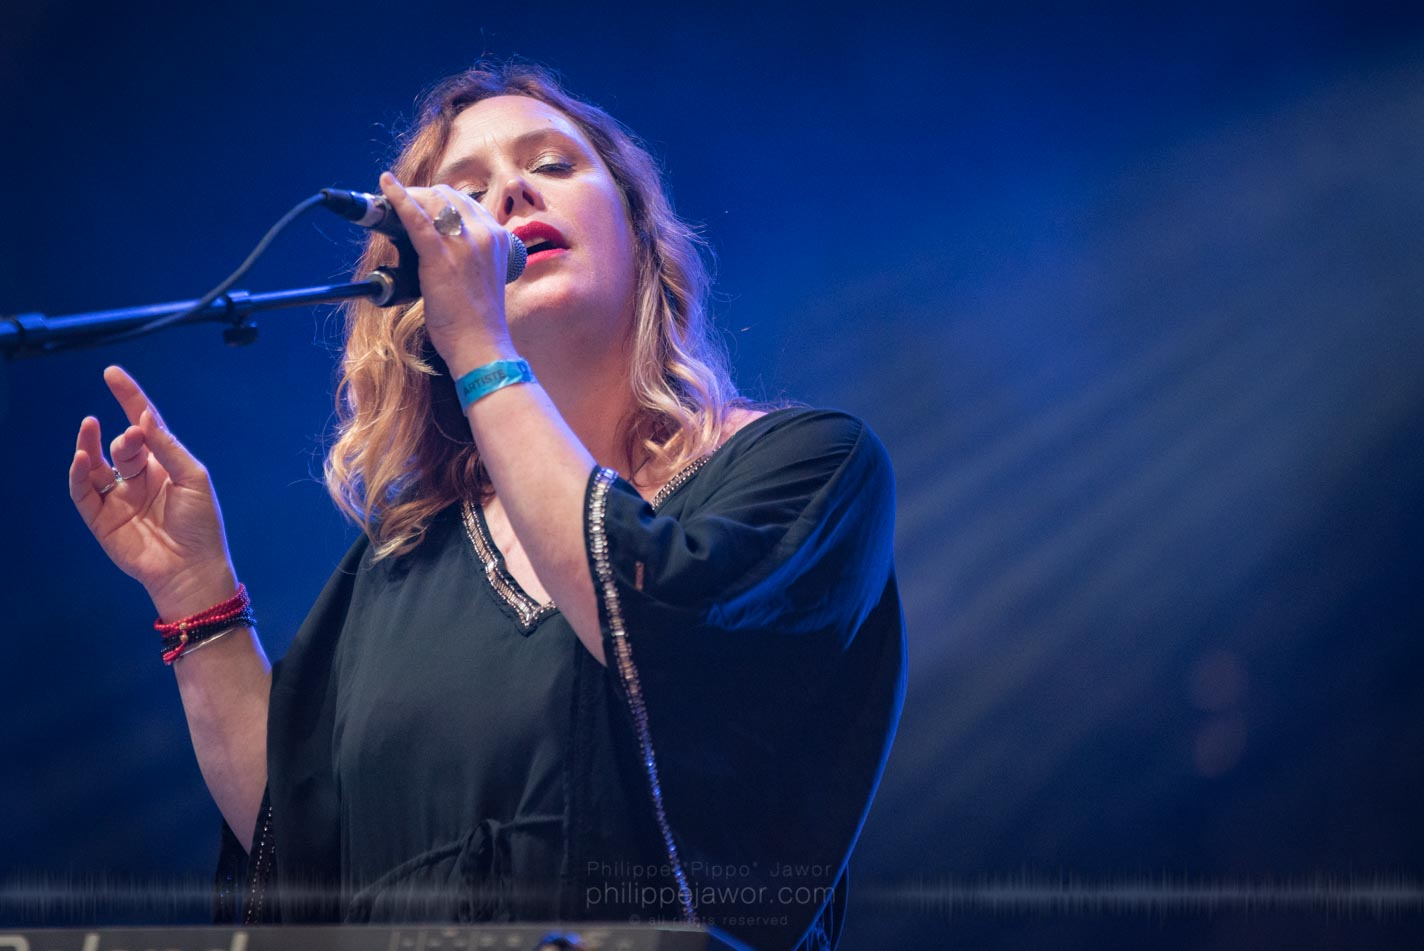 The English rock band Slowdive, live at Rock en Seine festival, Paris, France, August 2017.  On assignment for ZYVA Magazine All rights reserved.